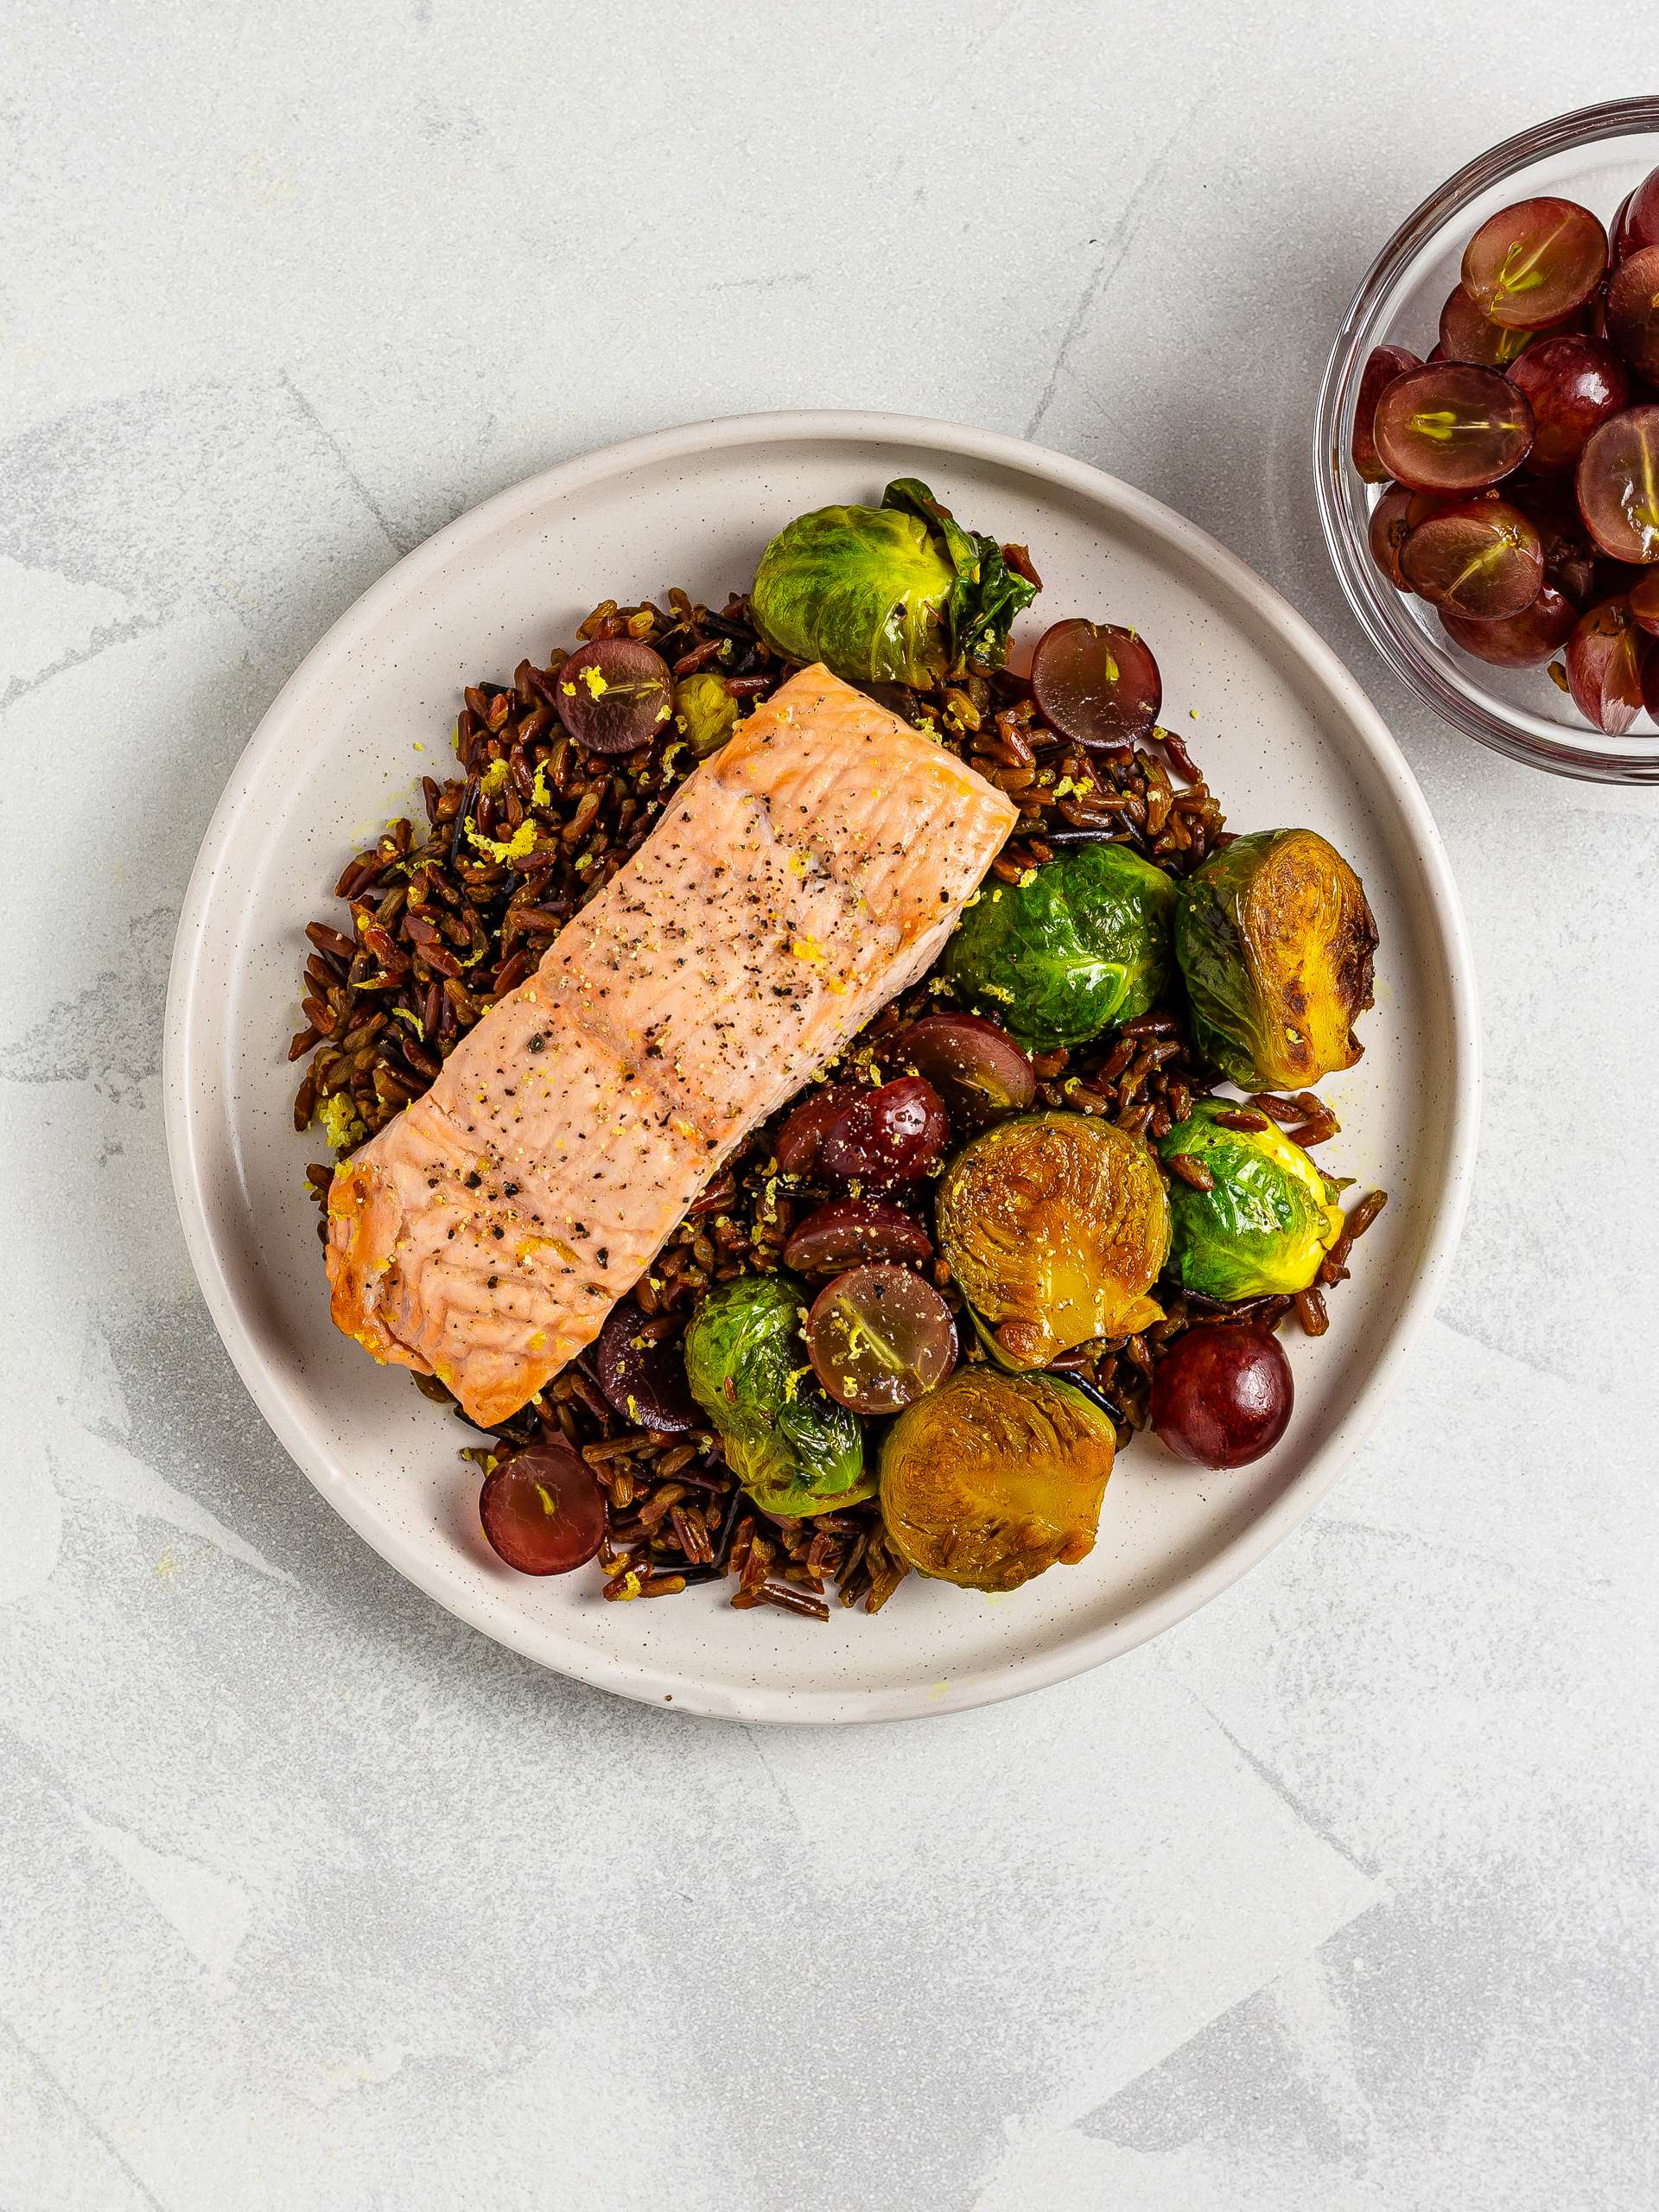 salmon with red rice and grapes salad